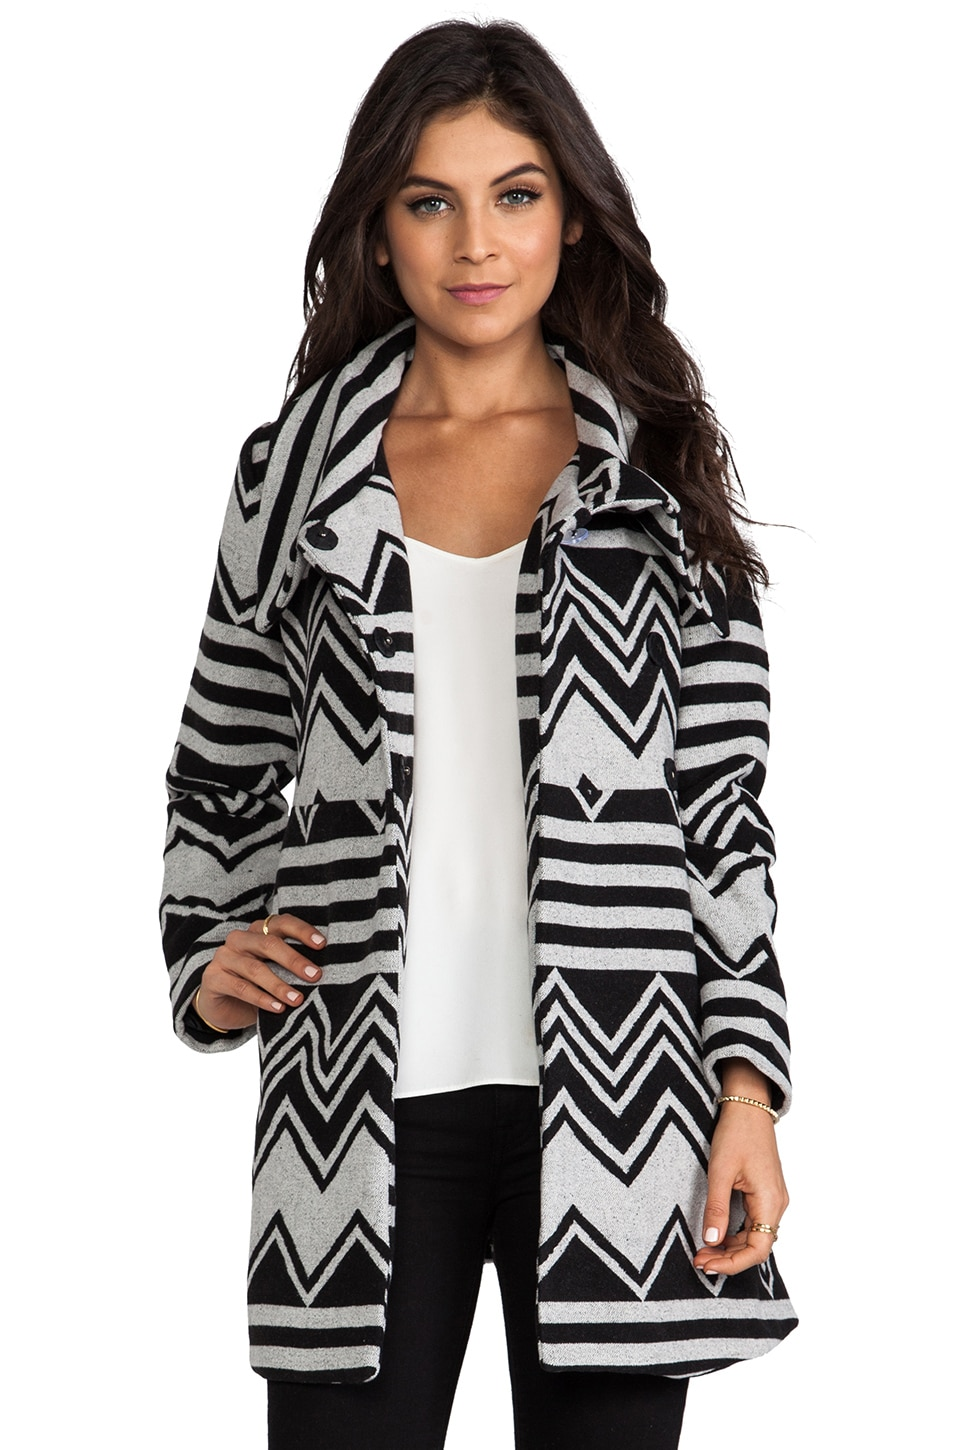 BB Dakota Emilia Charley Stripe Wool Blend Coat in Black/Ivory